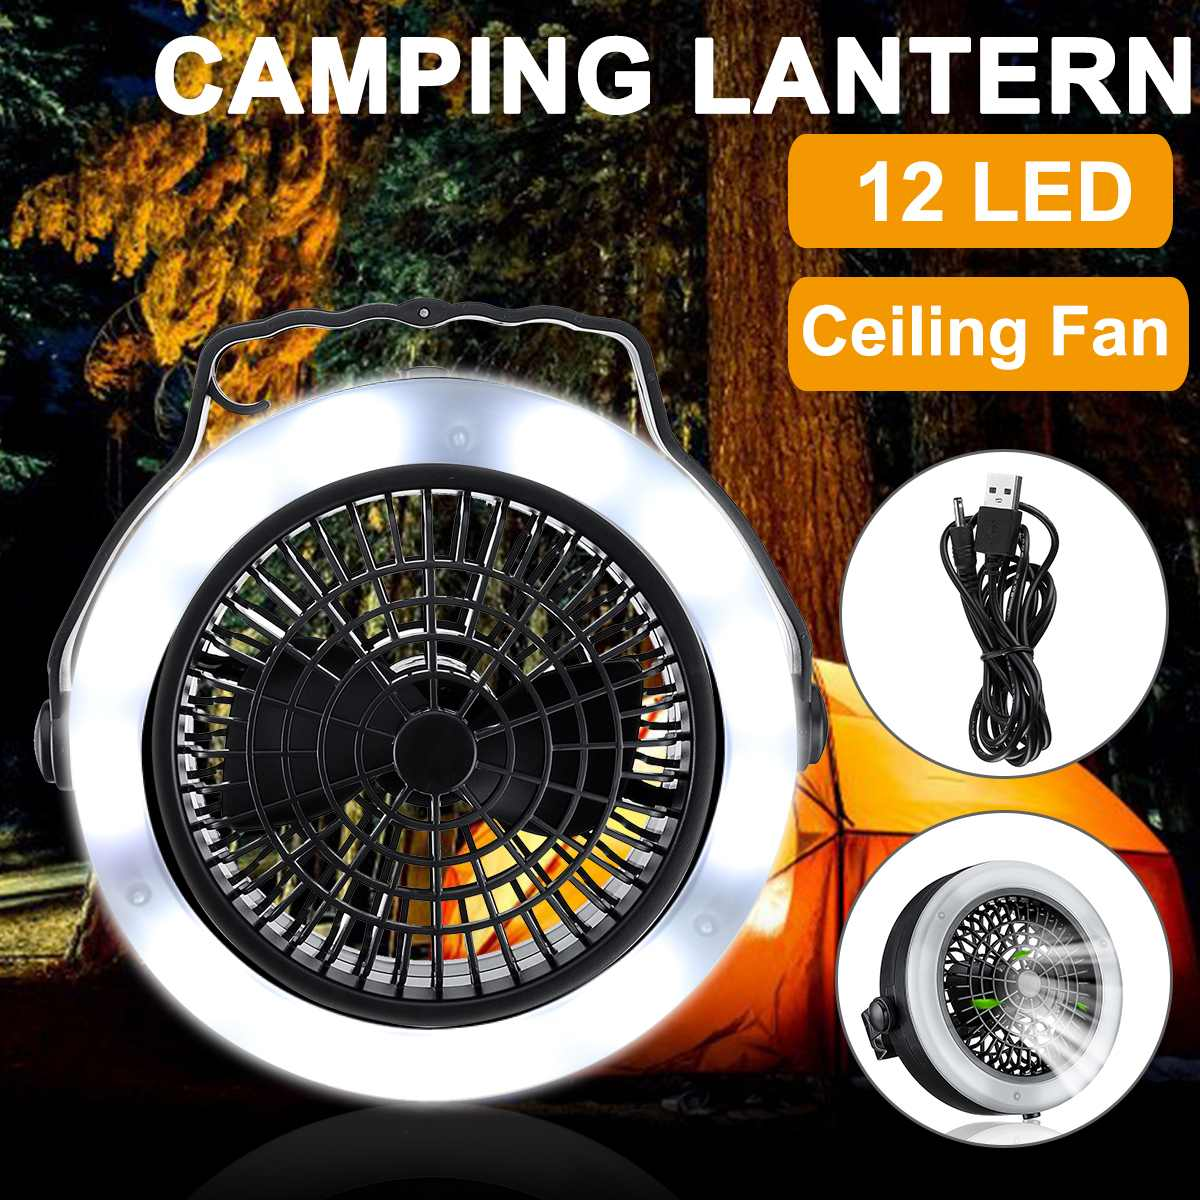 2 In 1 USB Portable 12 LED Ceiling Fan Light Mini  Cooler Outdoor Camping Tent Lamp Hanging Hook Lantern